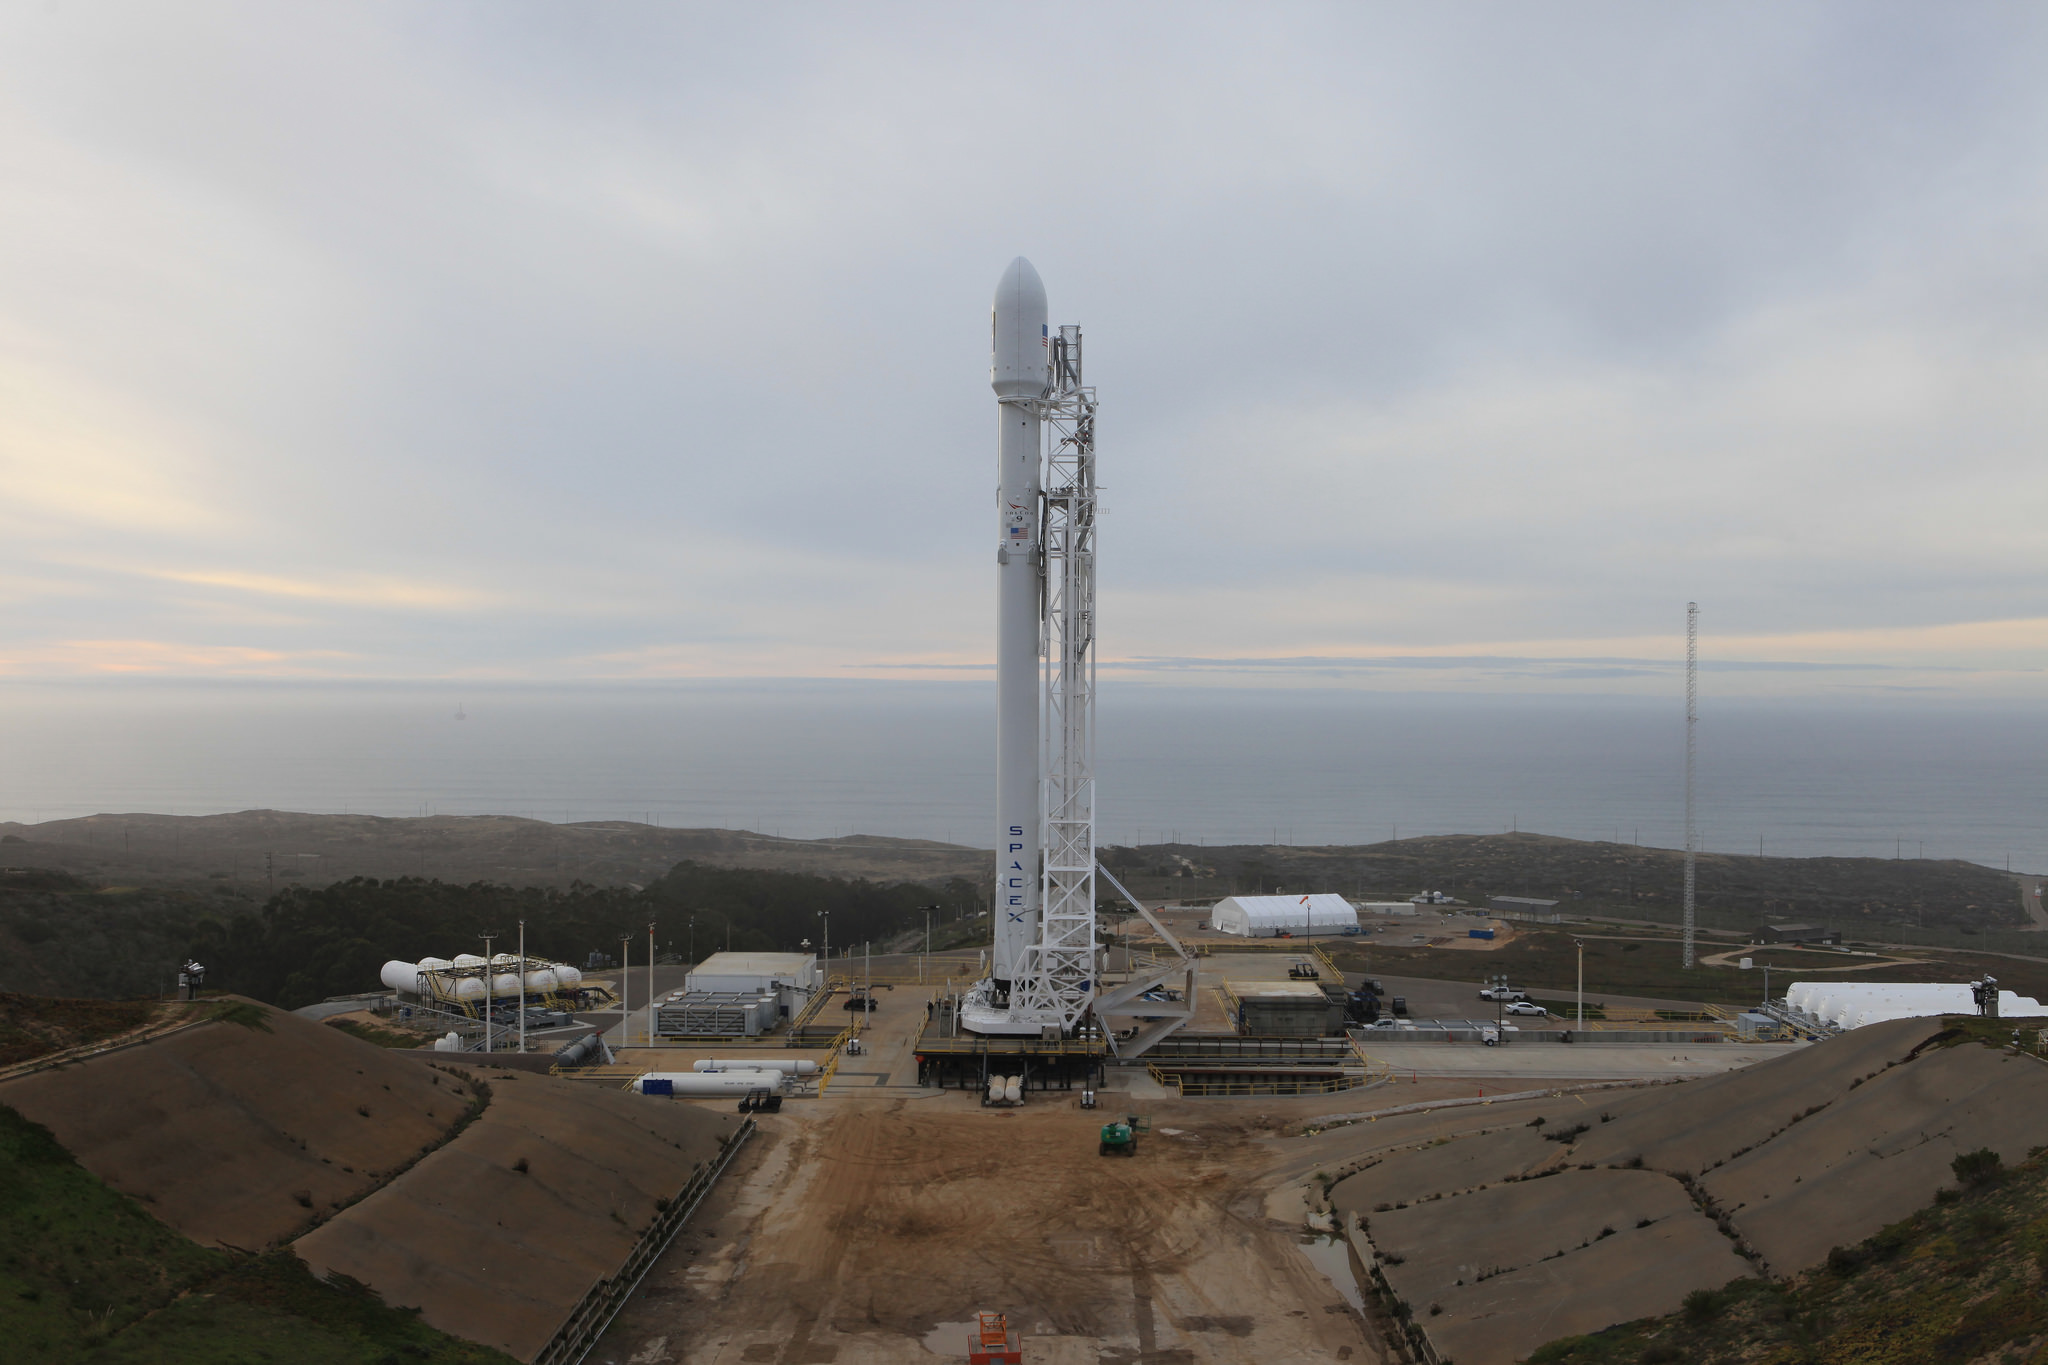 Spacex Failure Probe Complete Flights To Resume Sunday From